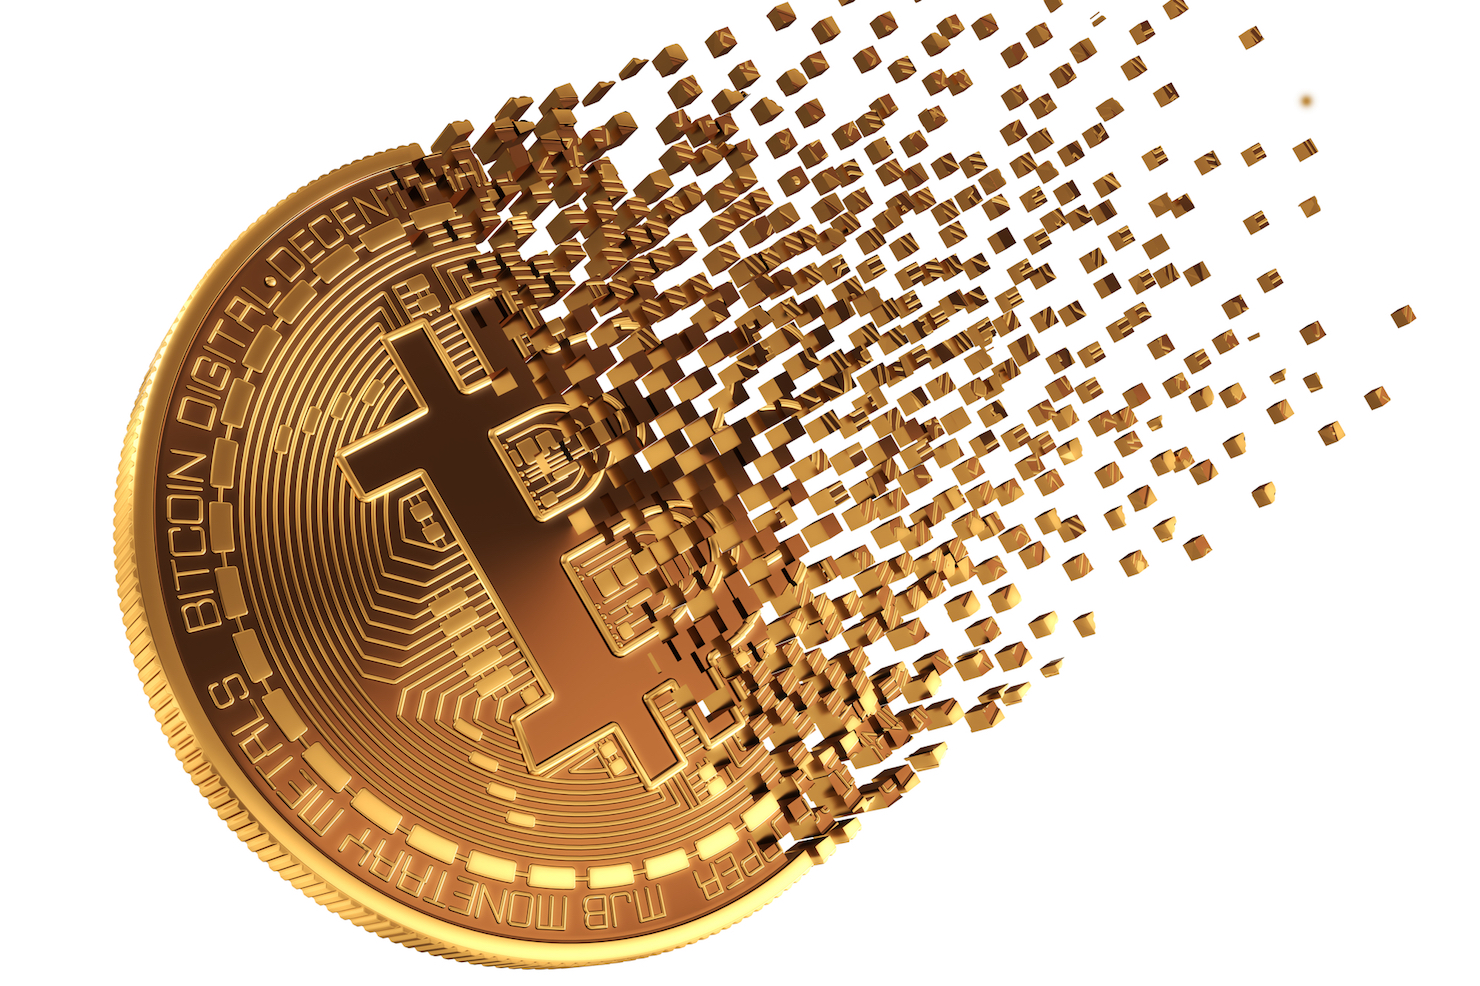 Bitcoin cryptocurrency stock image